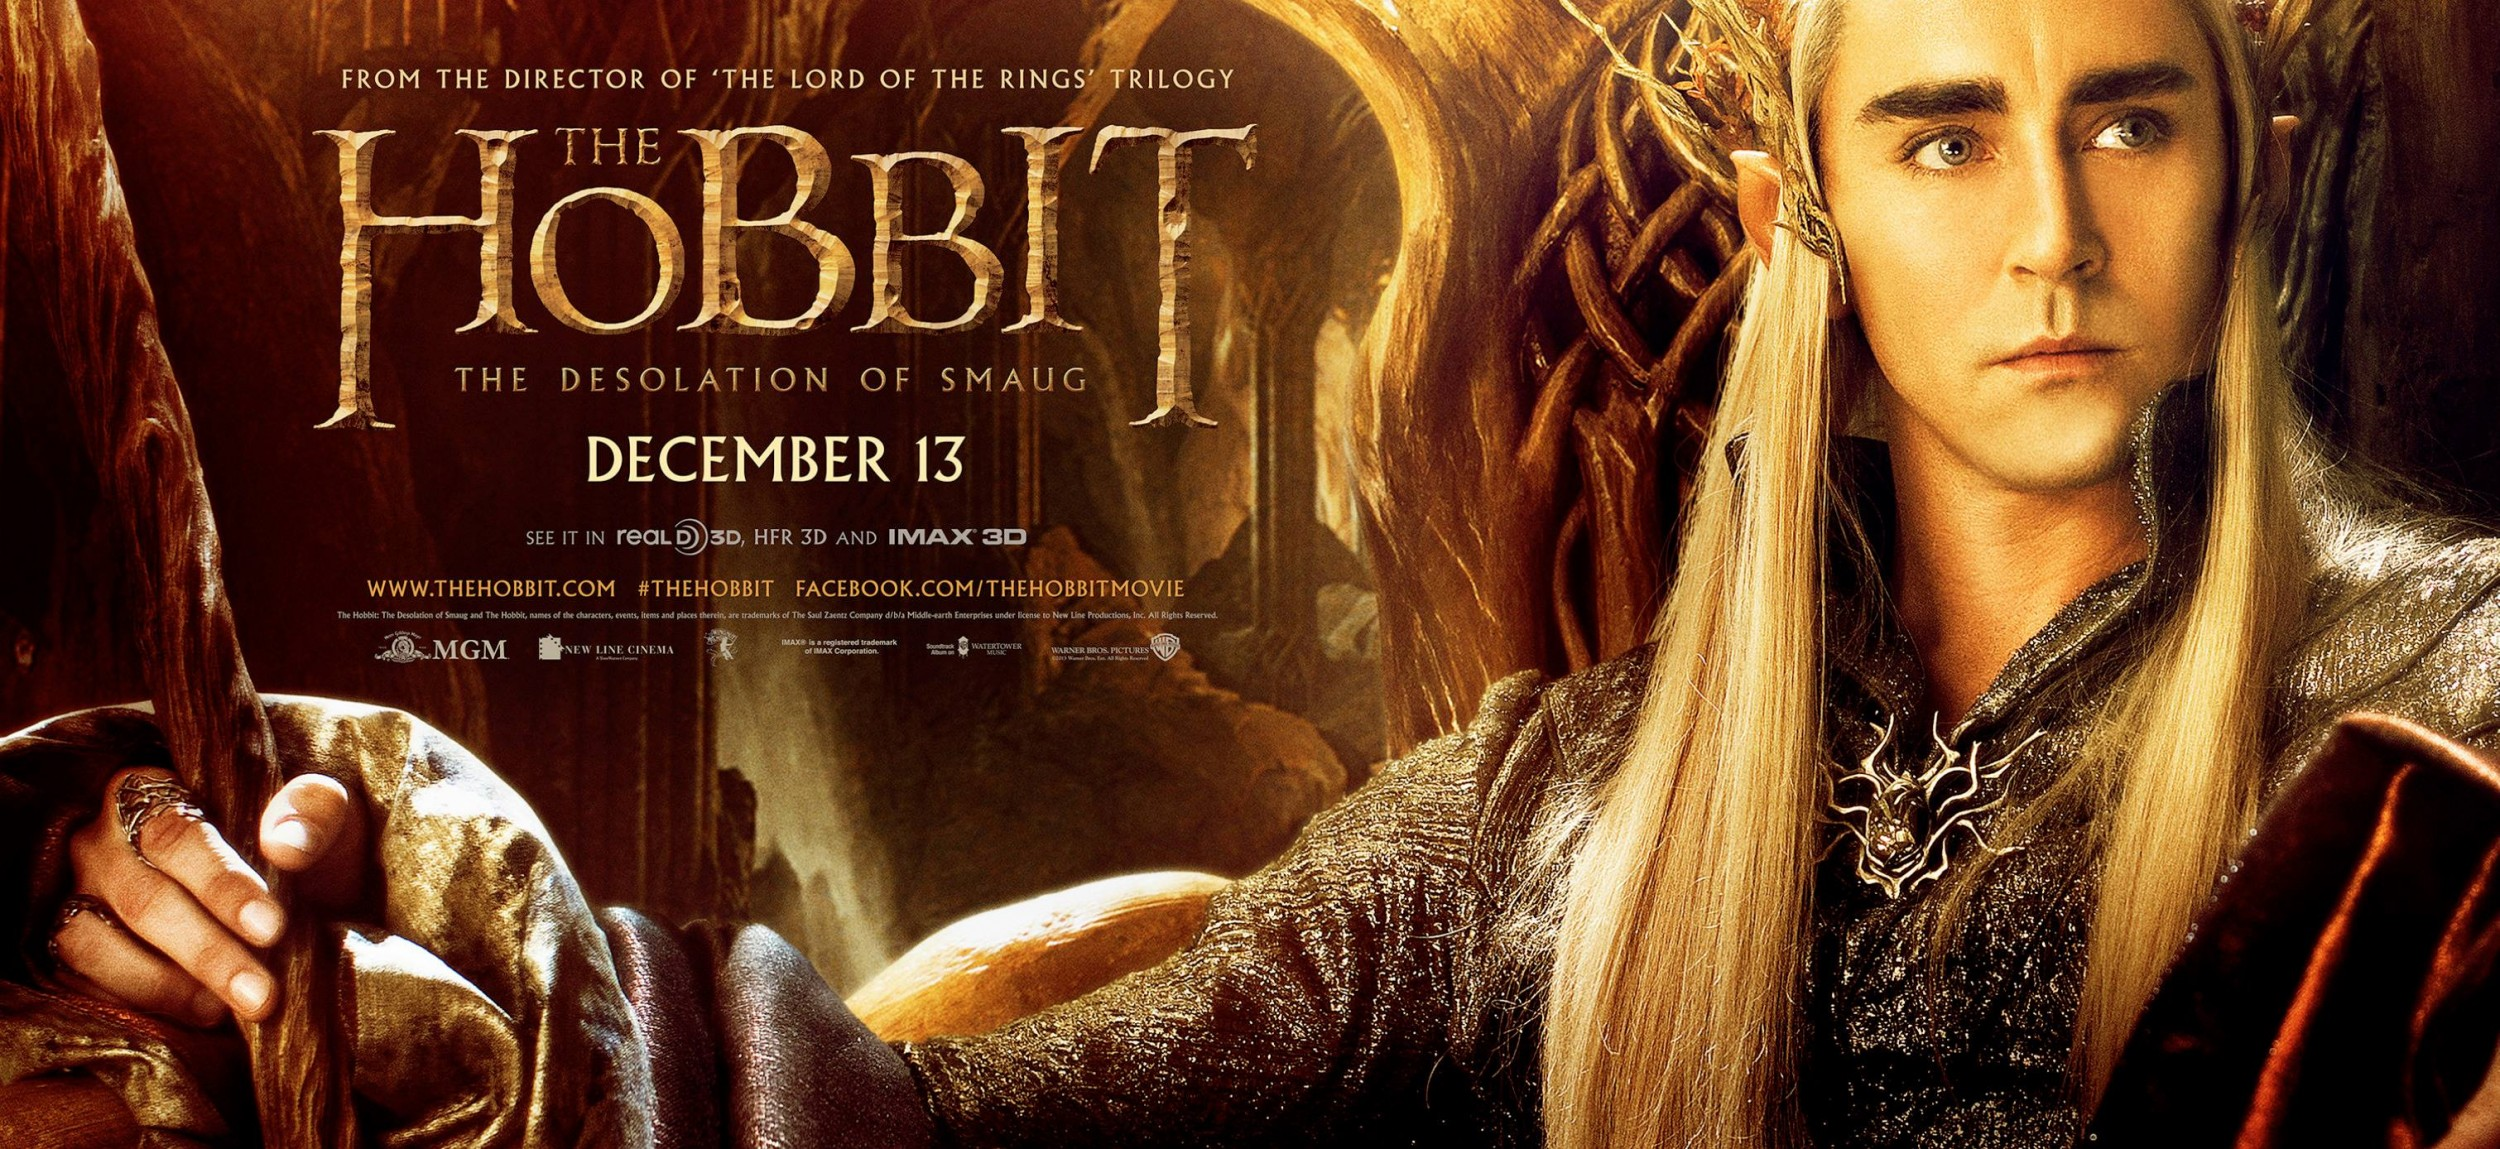 THE HOBBIT THE DESOLATION OF SMAUG-Official Poster Banner PROMO BANNER-30SETEMBRO2013-02